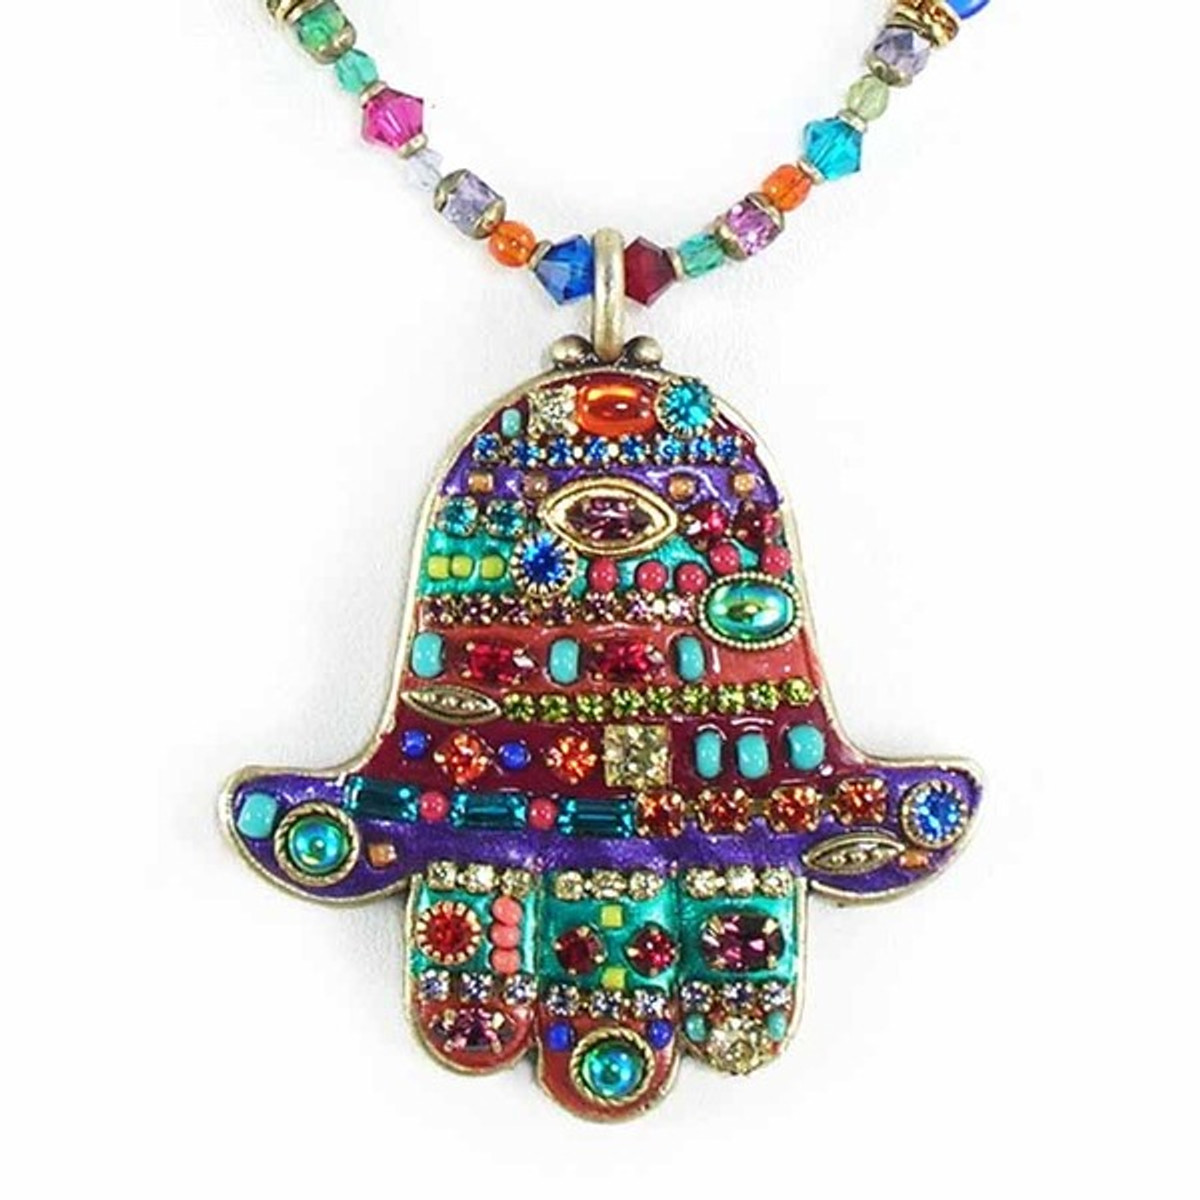 Beaded Chain Multibright Necklace